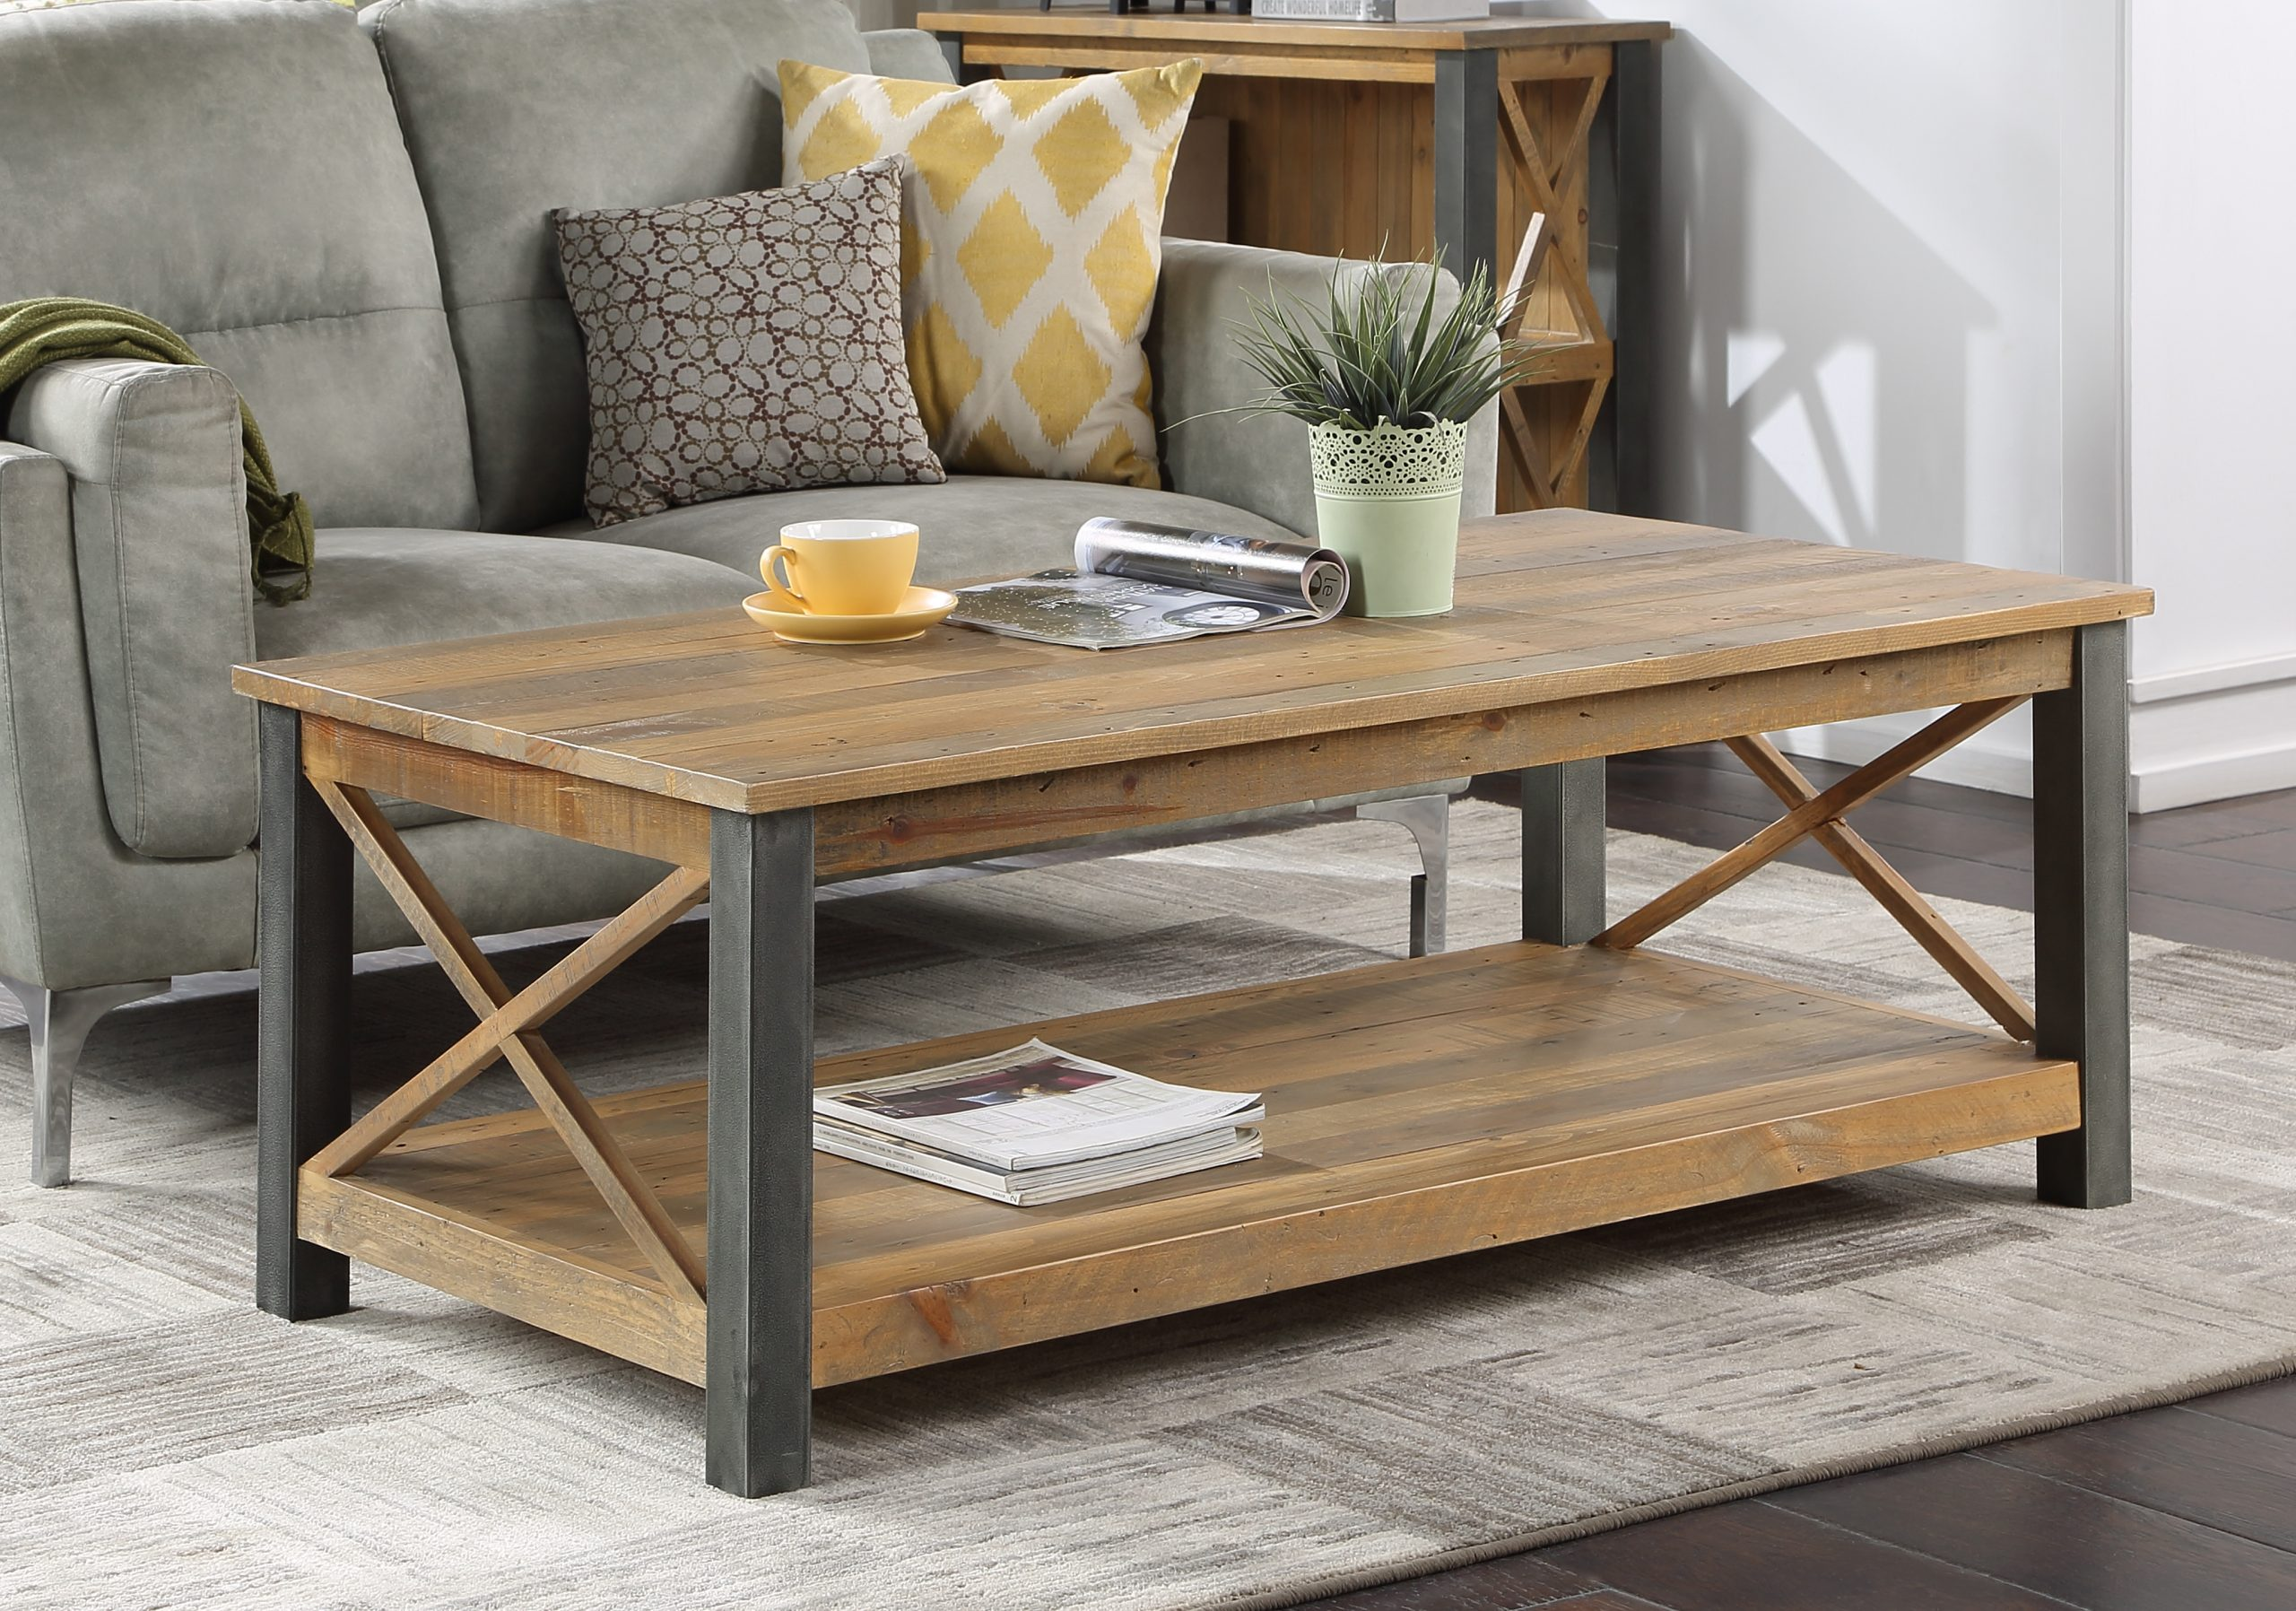 large reclaimed wood coffee table with metal legs